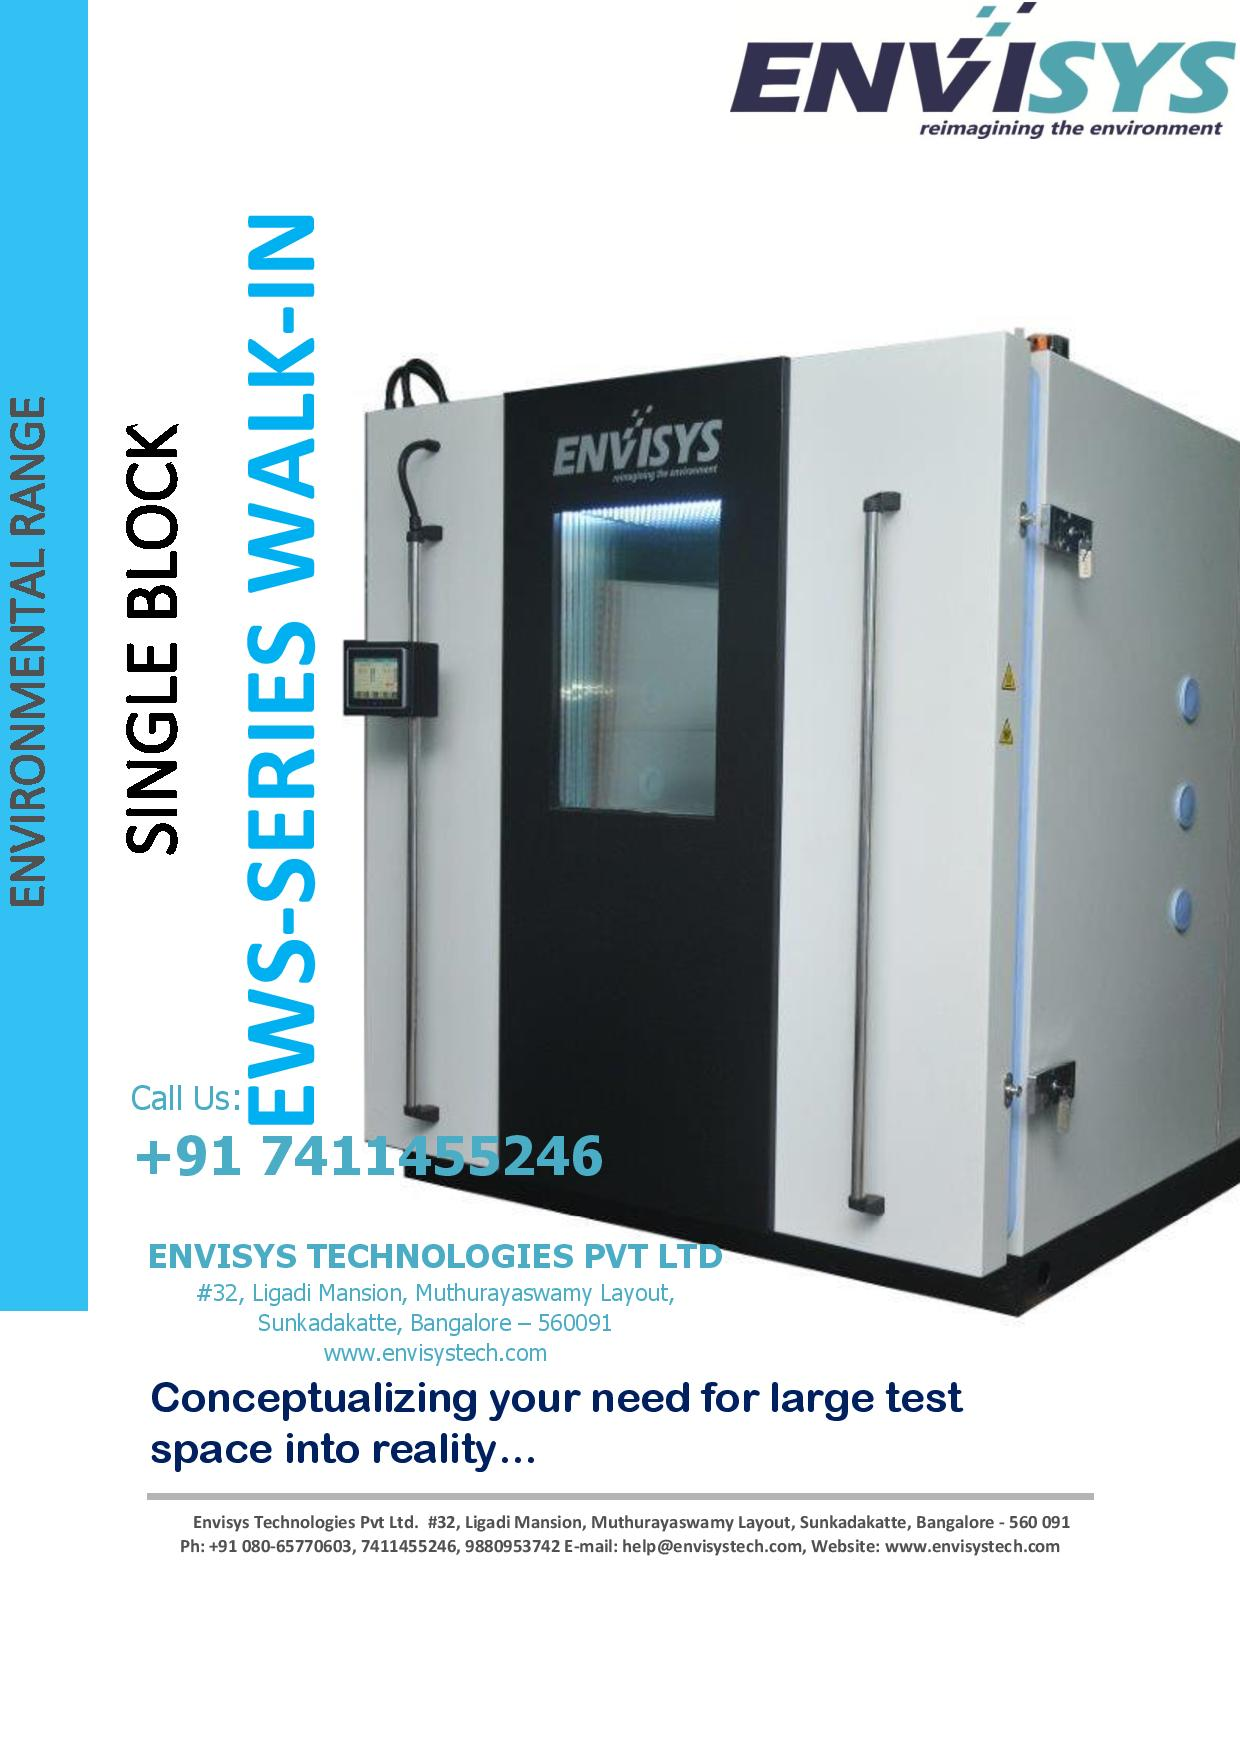 SINGLE BLOCK - WALK-IN ENVIRONMENTAL CHAMBERS Conceptualizing your need for large test space into reality...